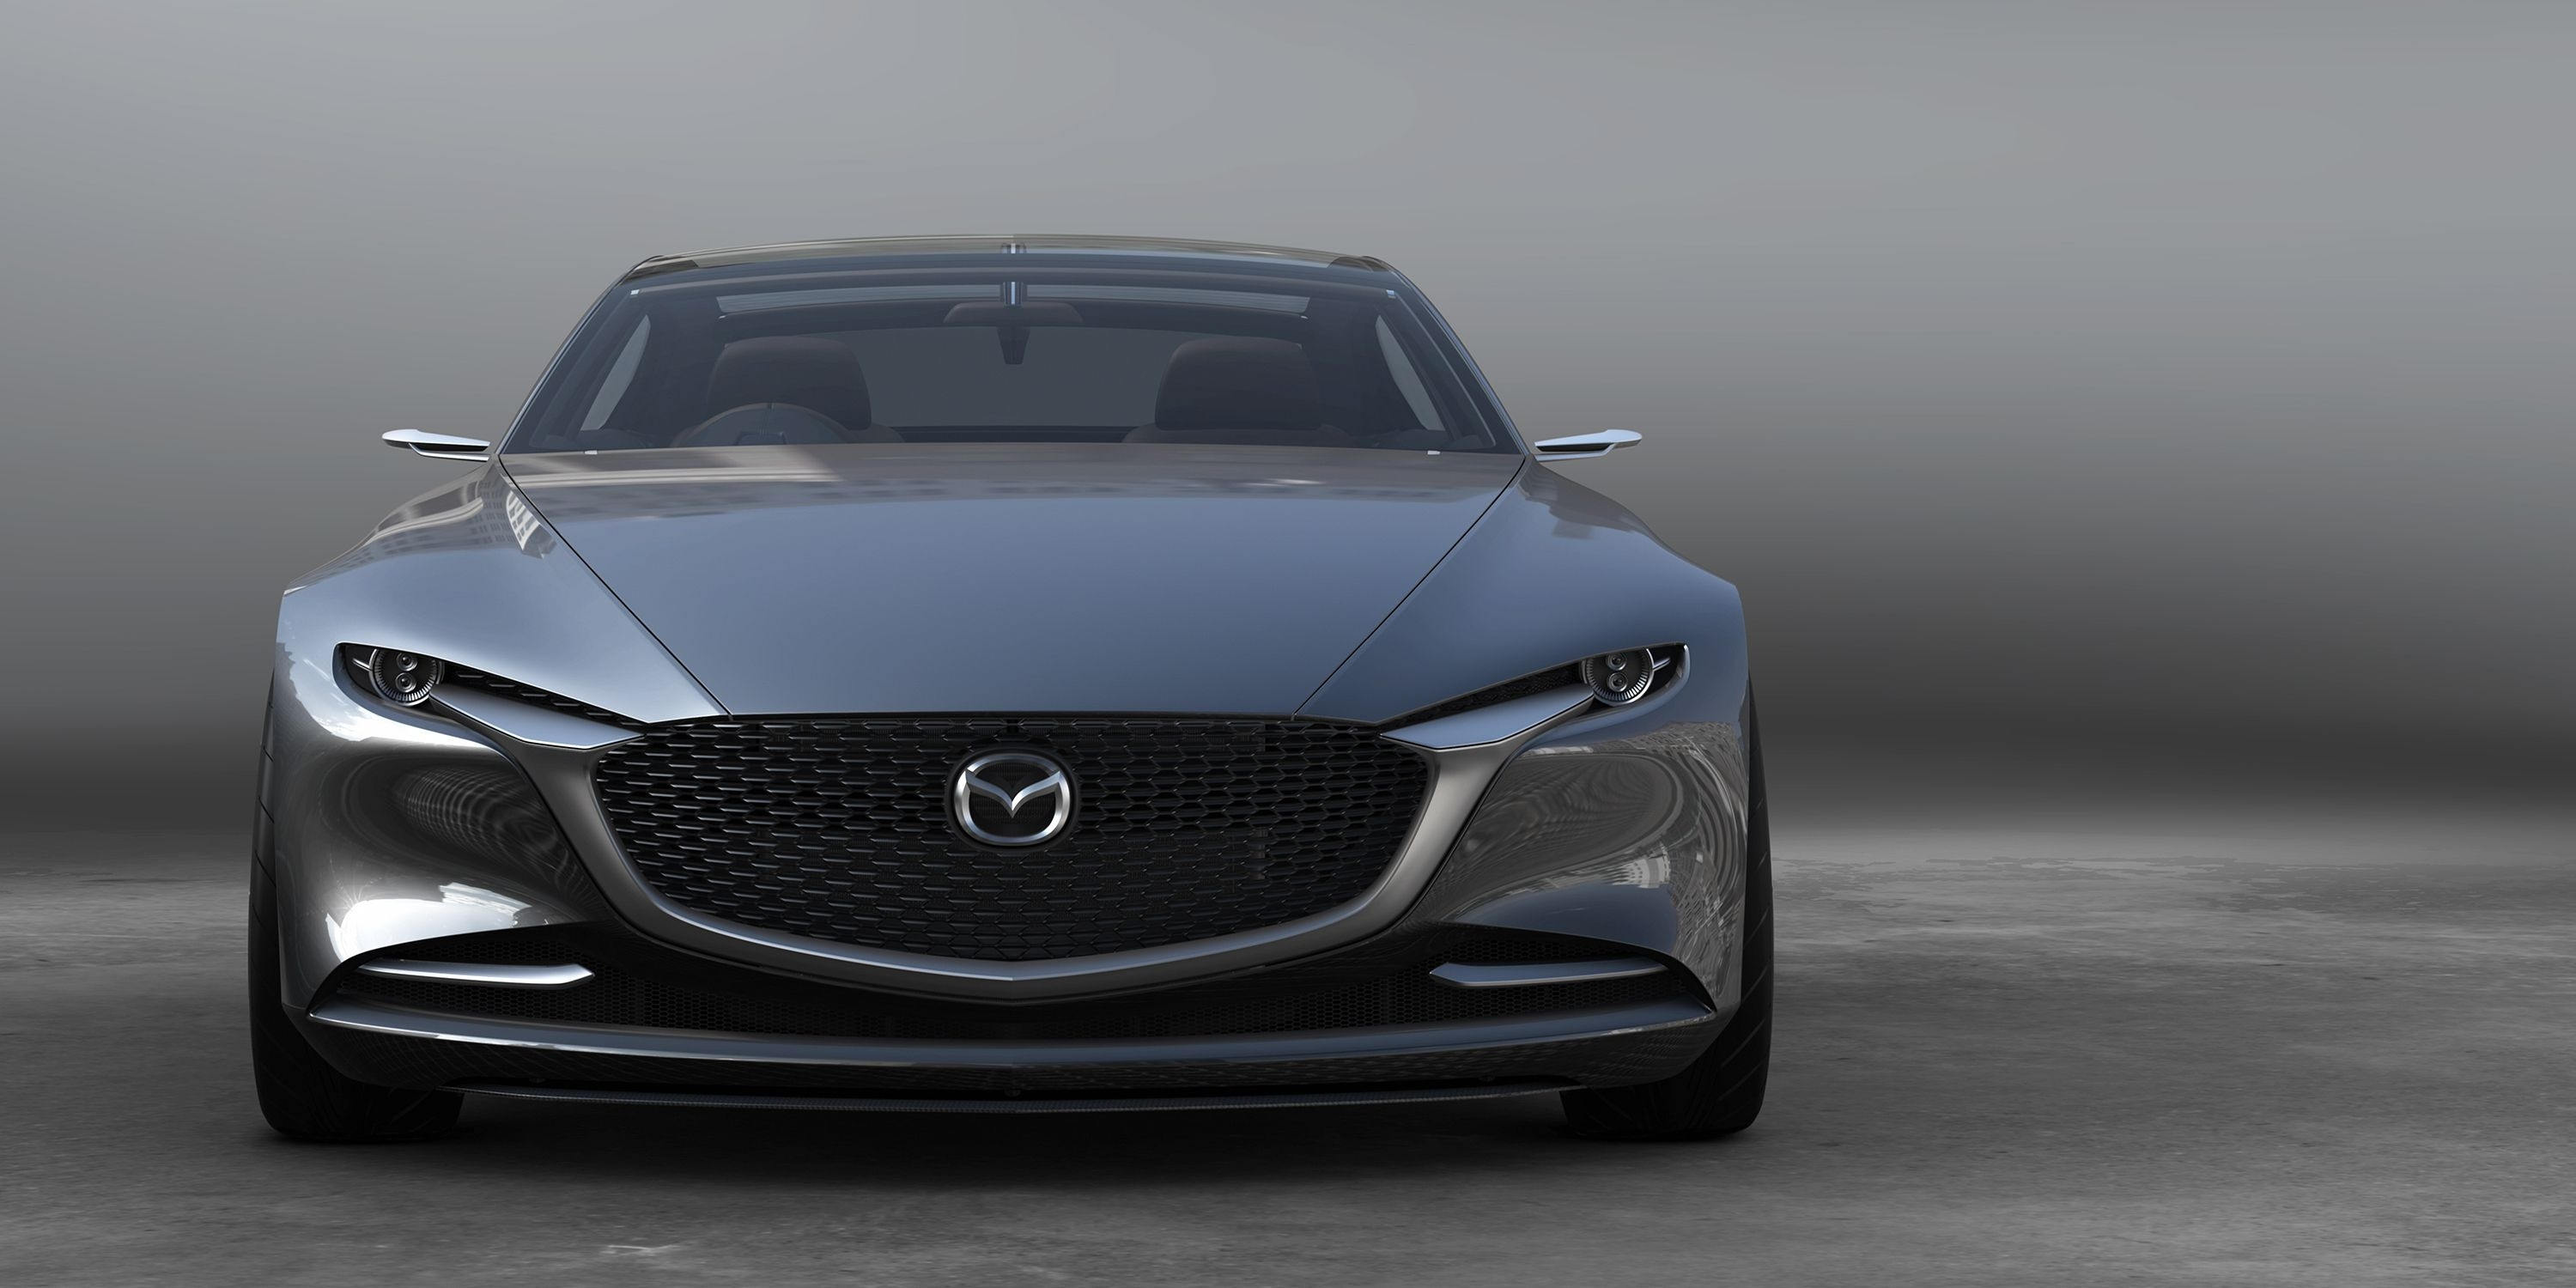 62 A 2020 Mazda 6 Coupe Price and Review